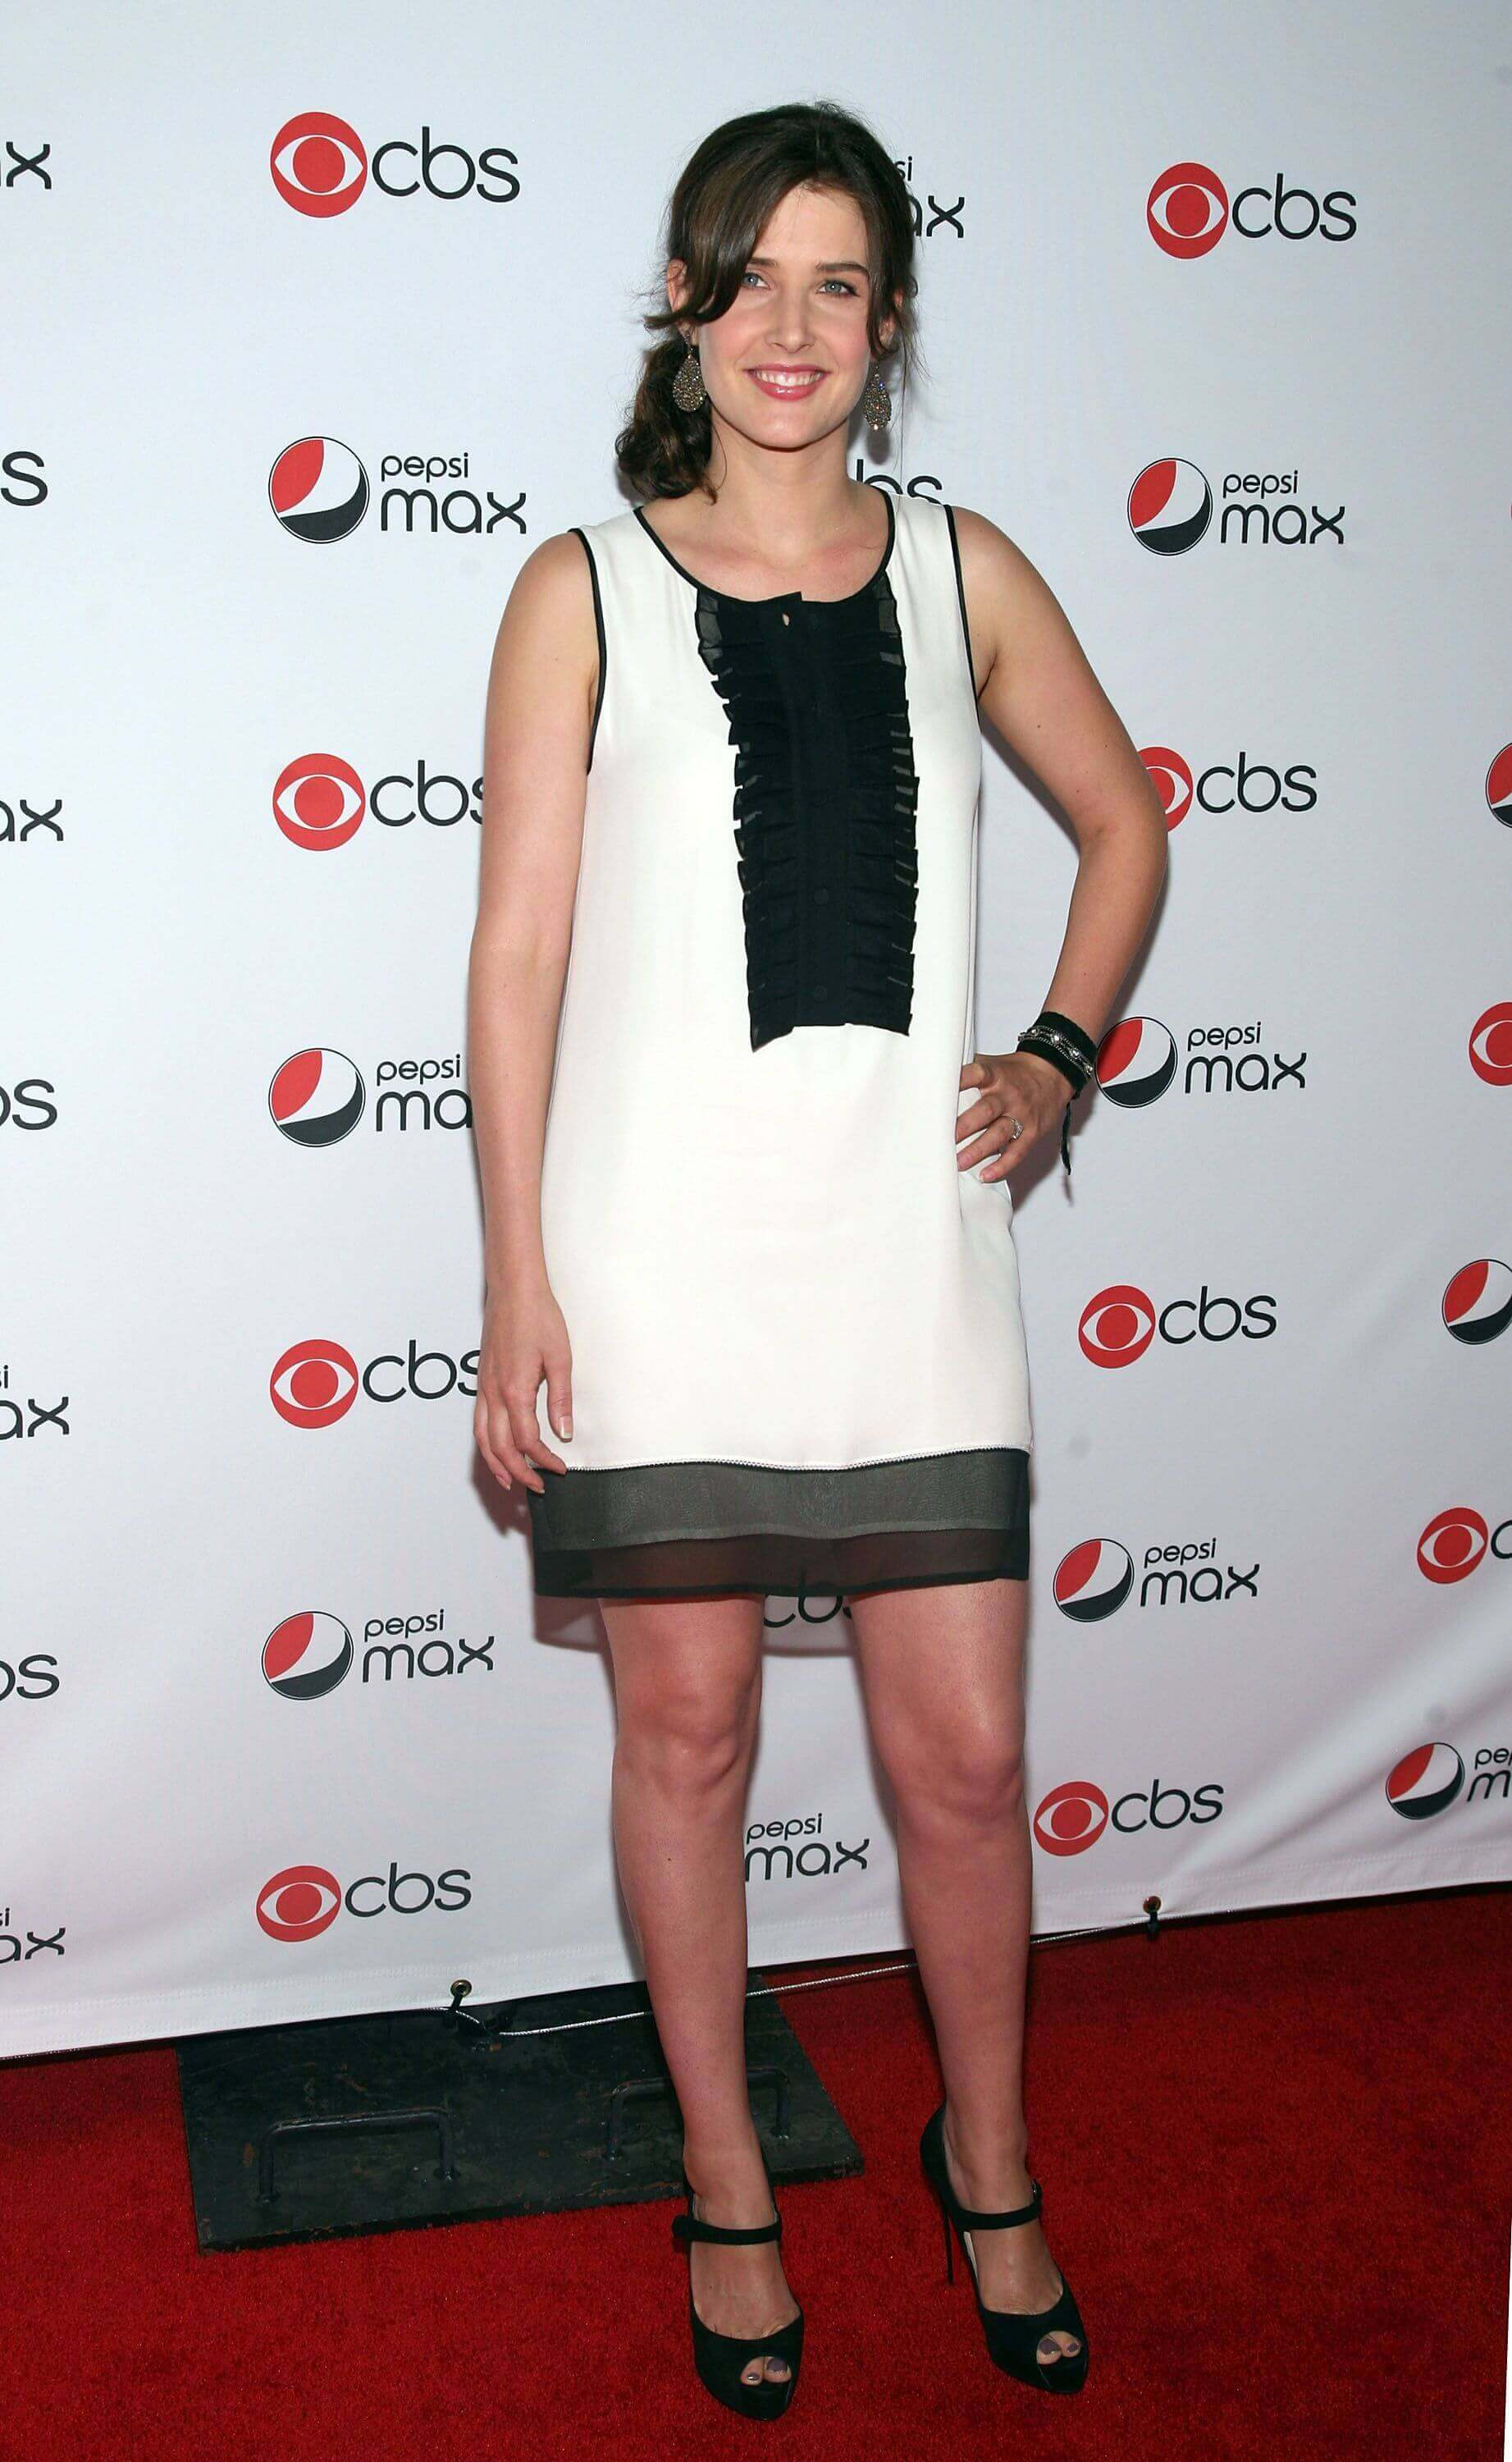 cobie smulders hot pictures